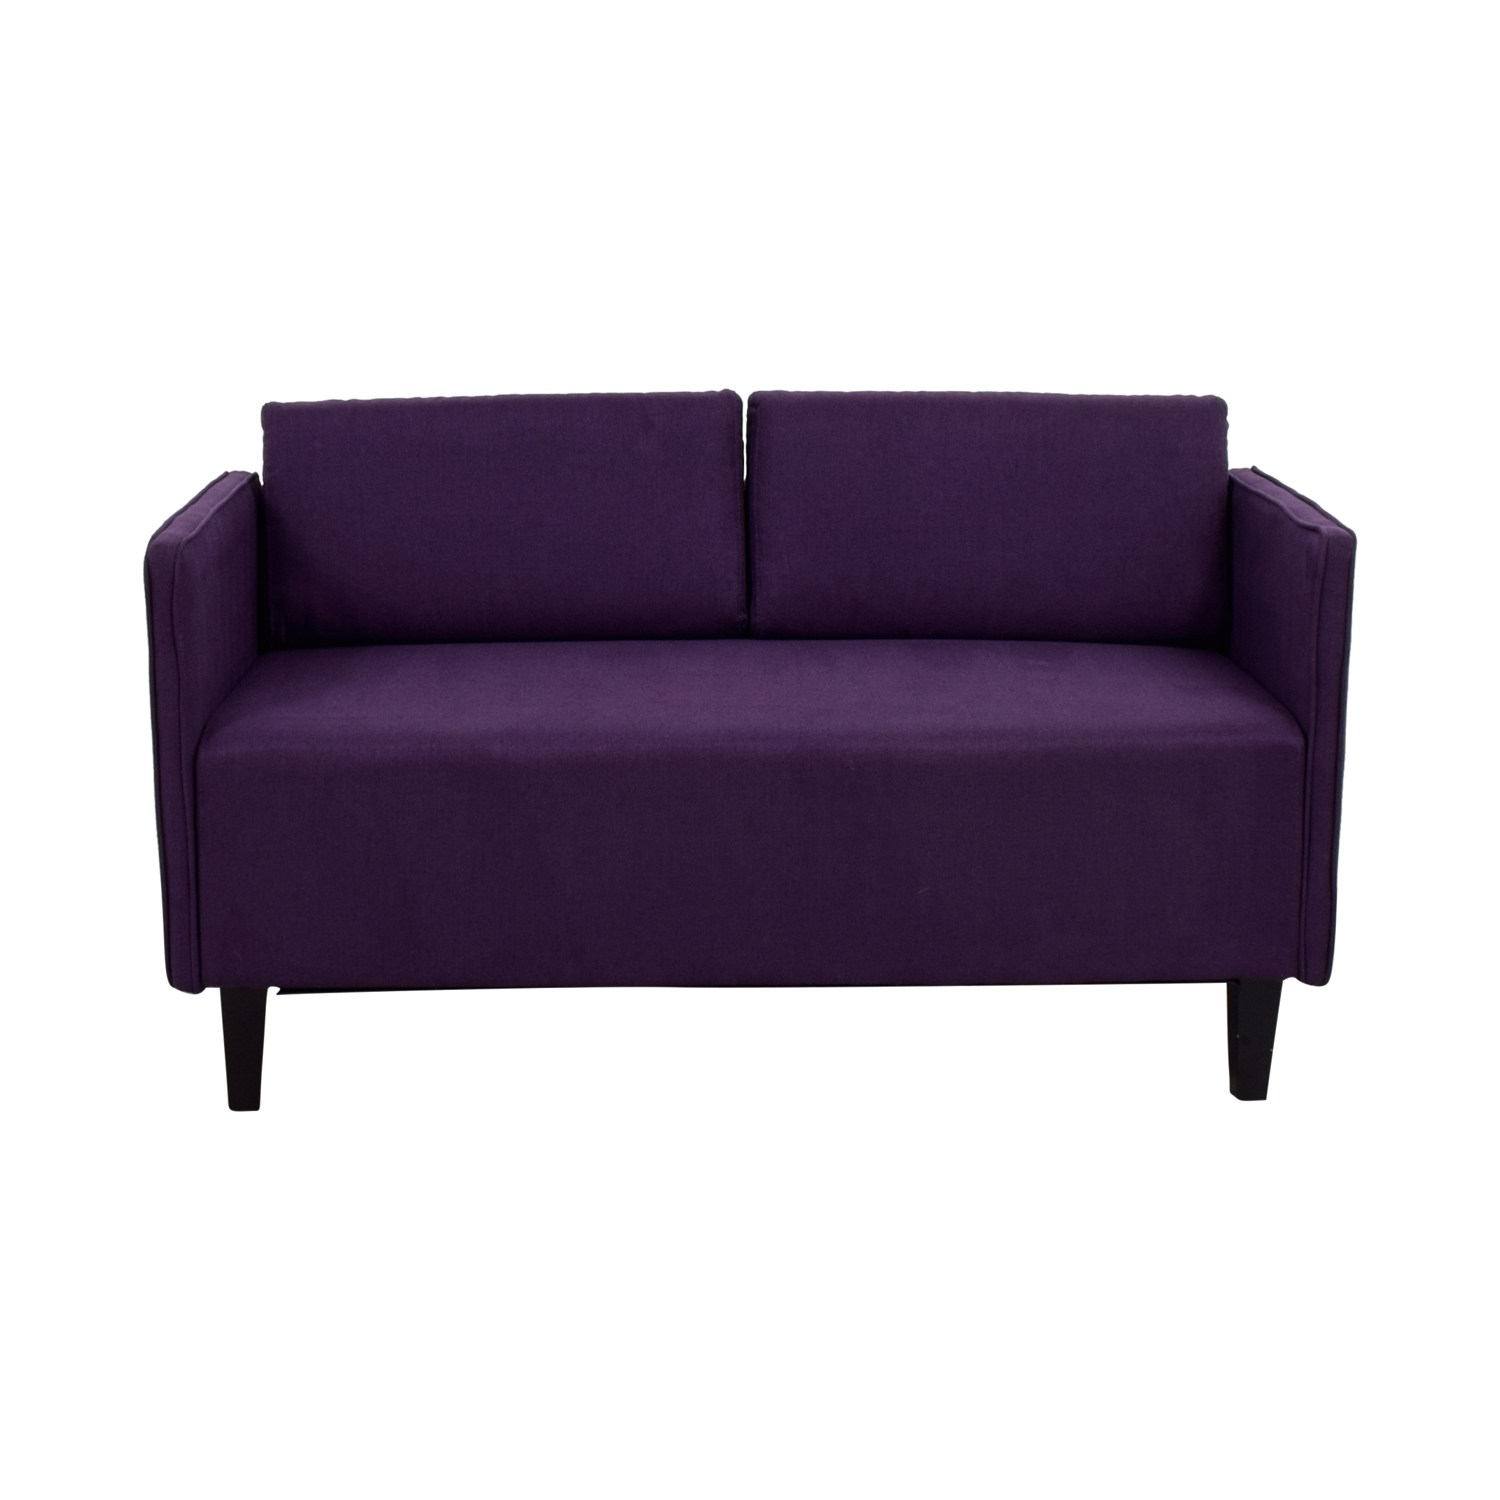 Ebern Designs Ebern Designs Dempsey Purple Herringbone Loveseat second hand